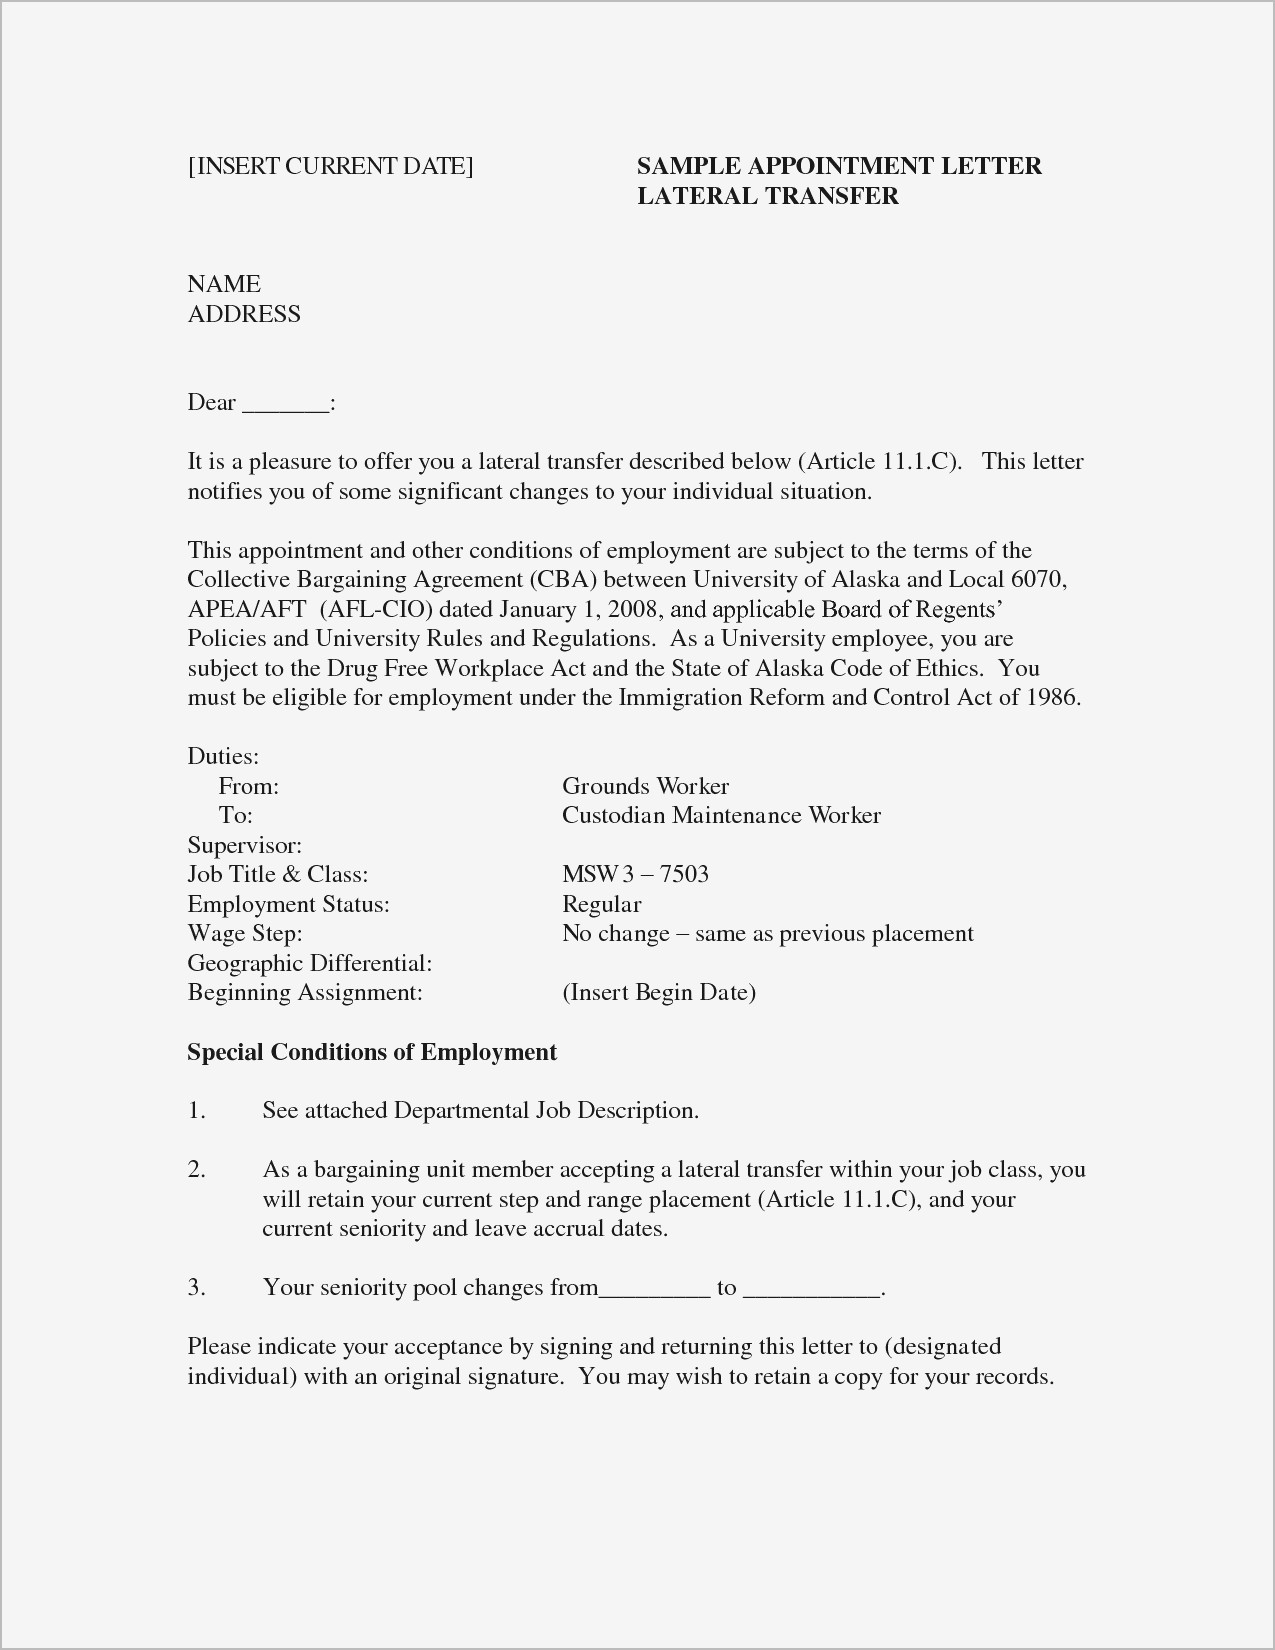 Position Offer Letter Template - Job Fer Letters From Employer New Job Fer Letter Template Us Copy